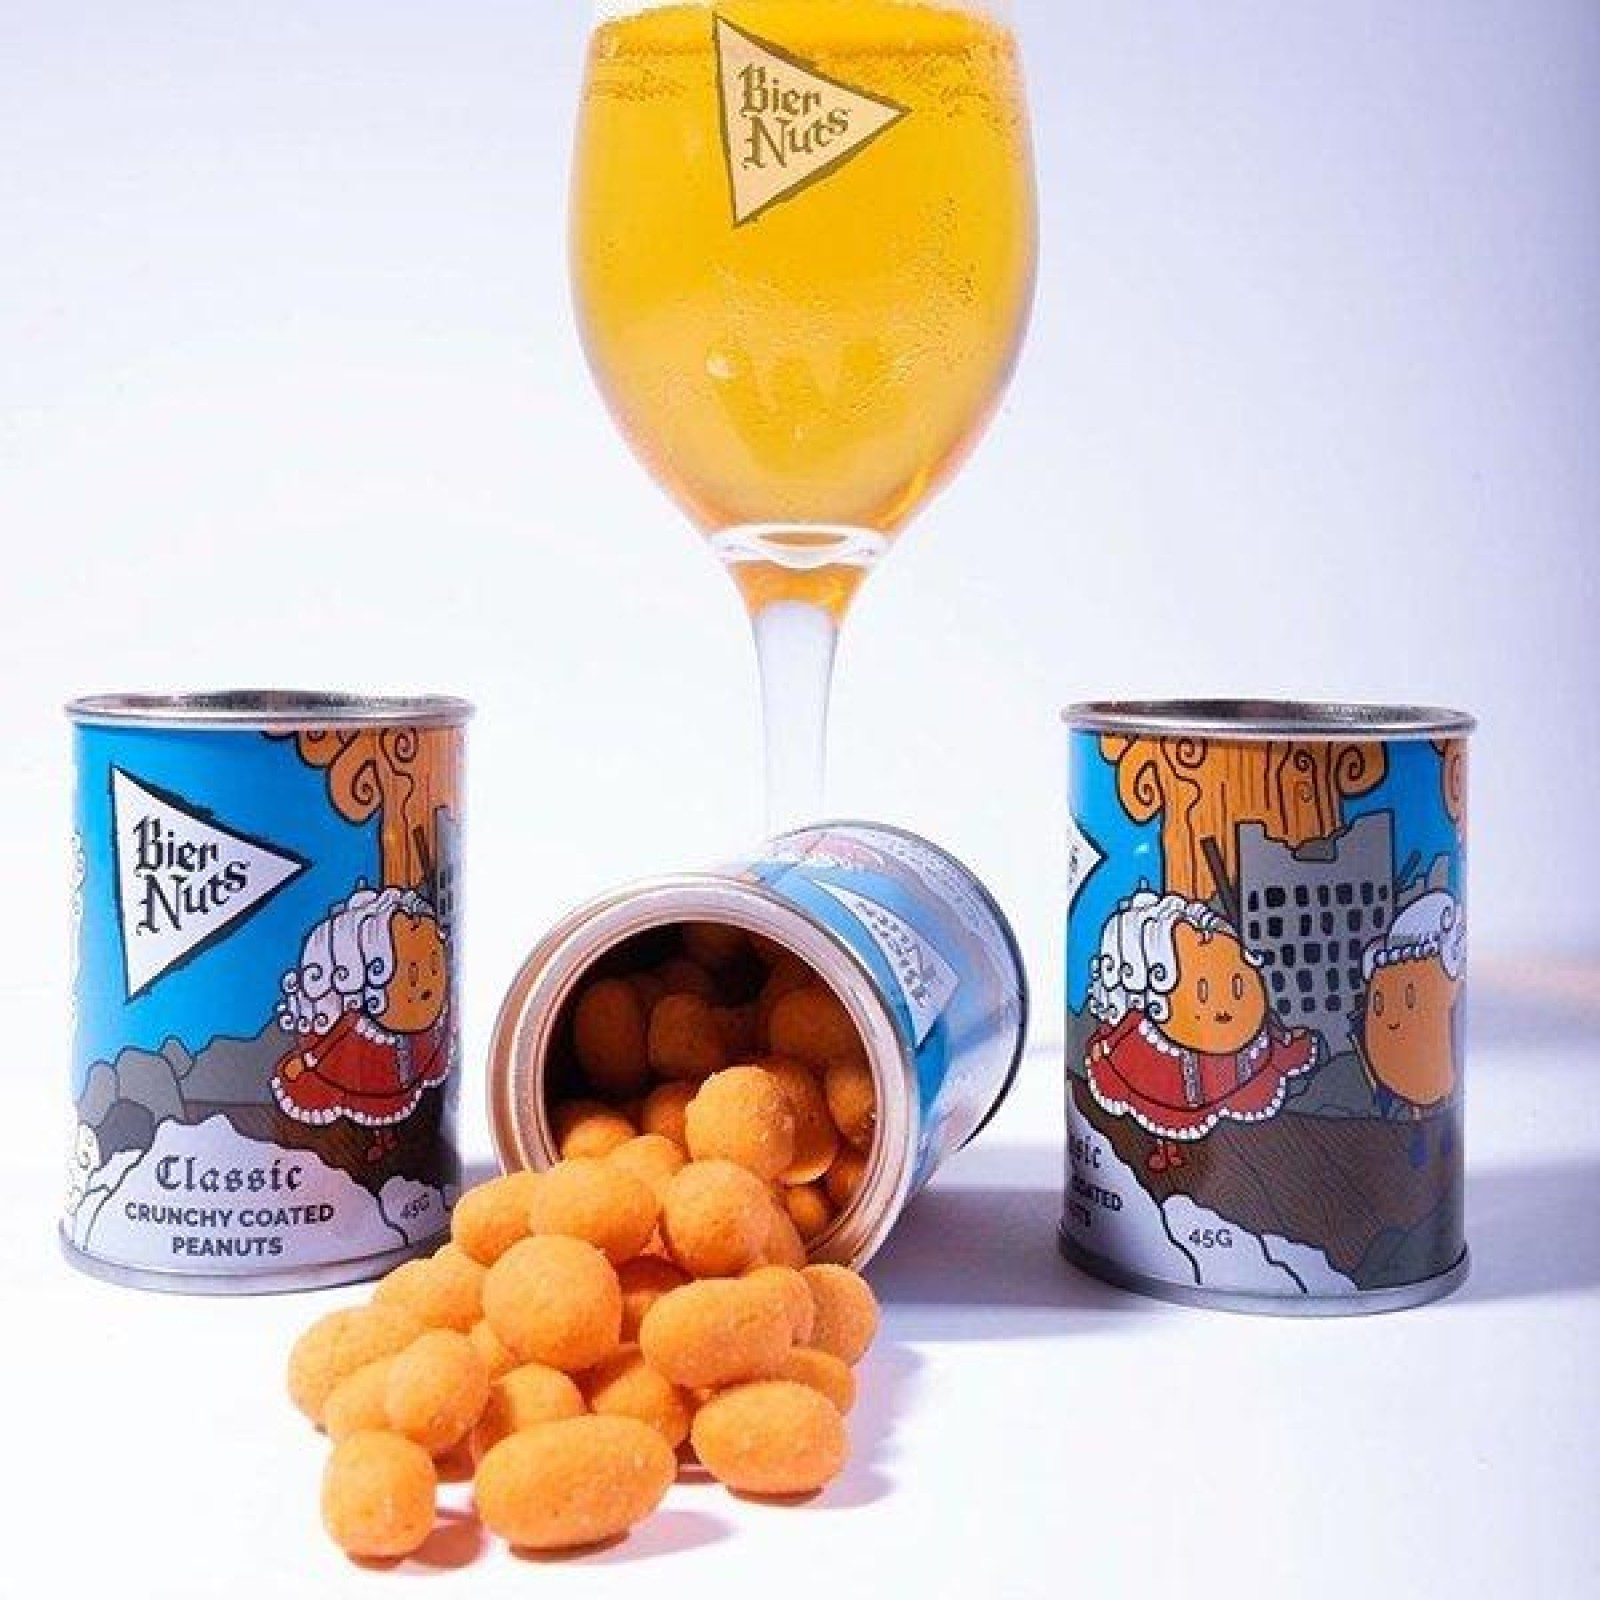 Bier Nuts Mixed Flavours 3x45g